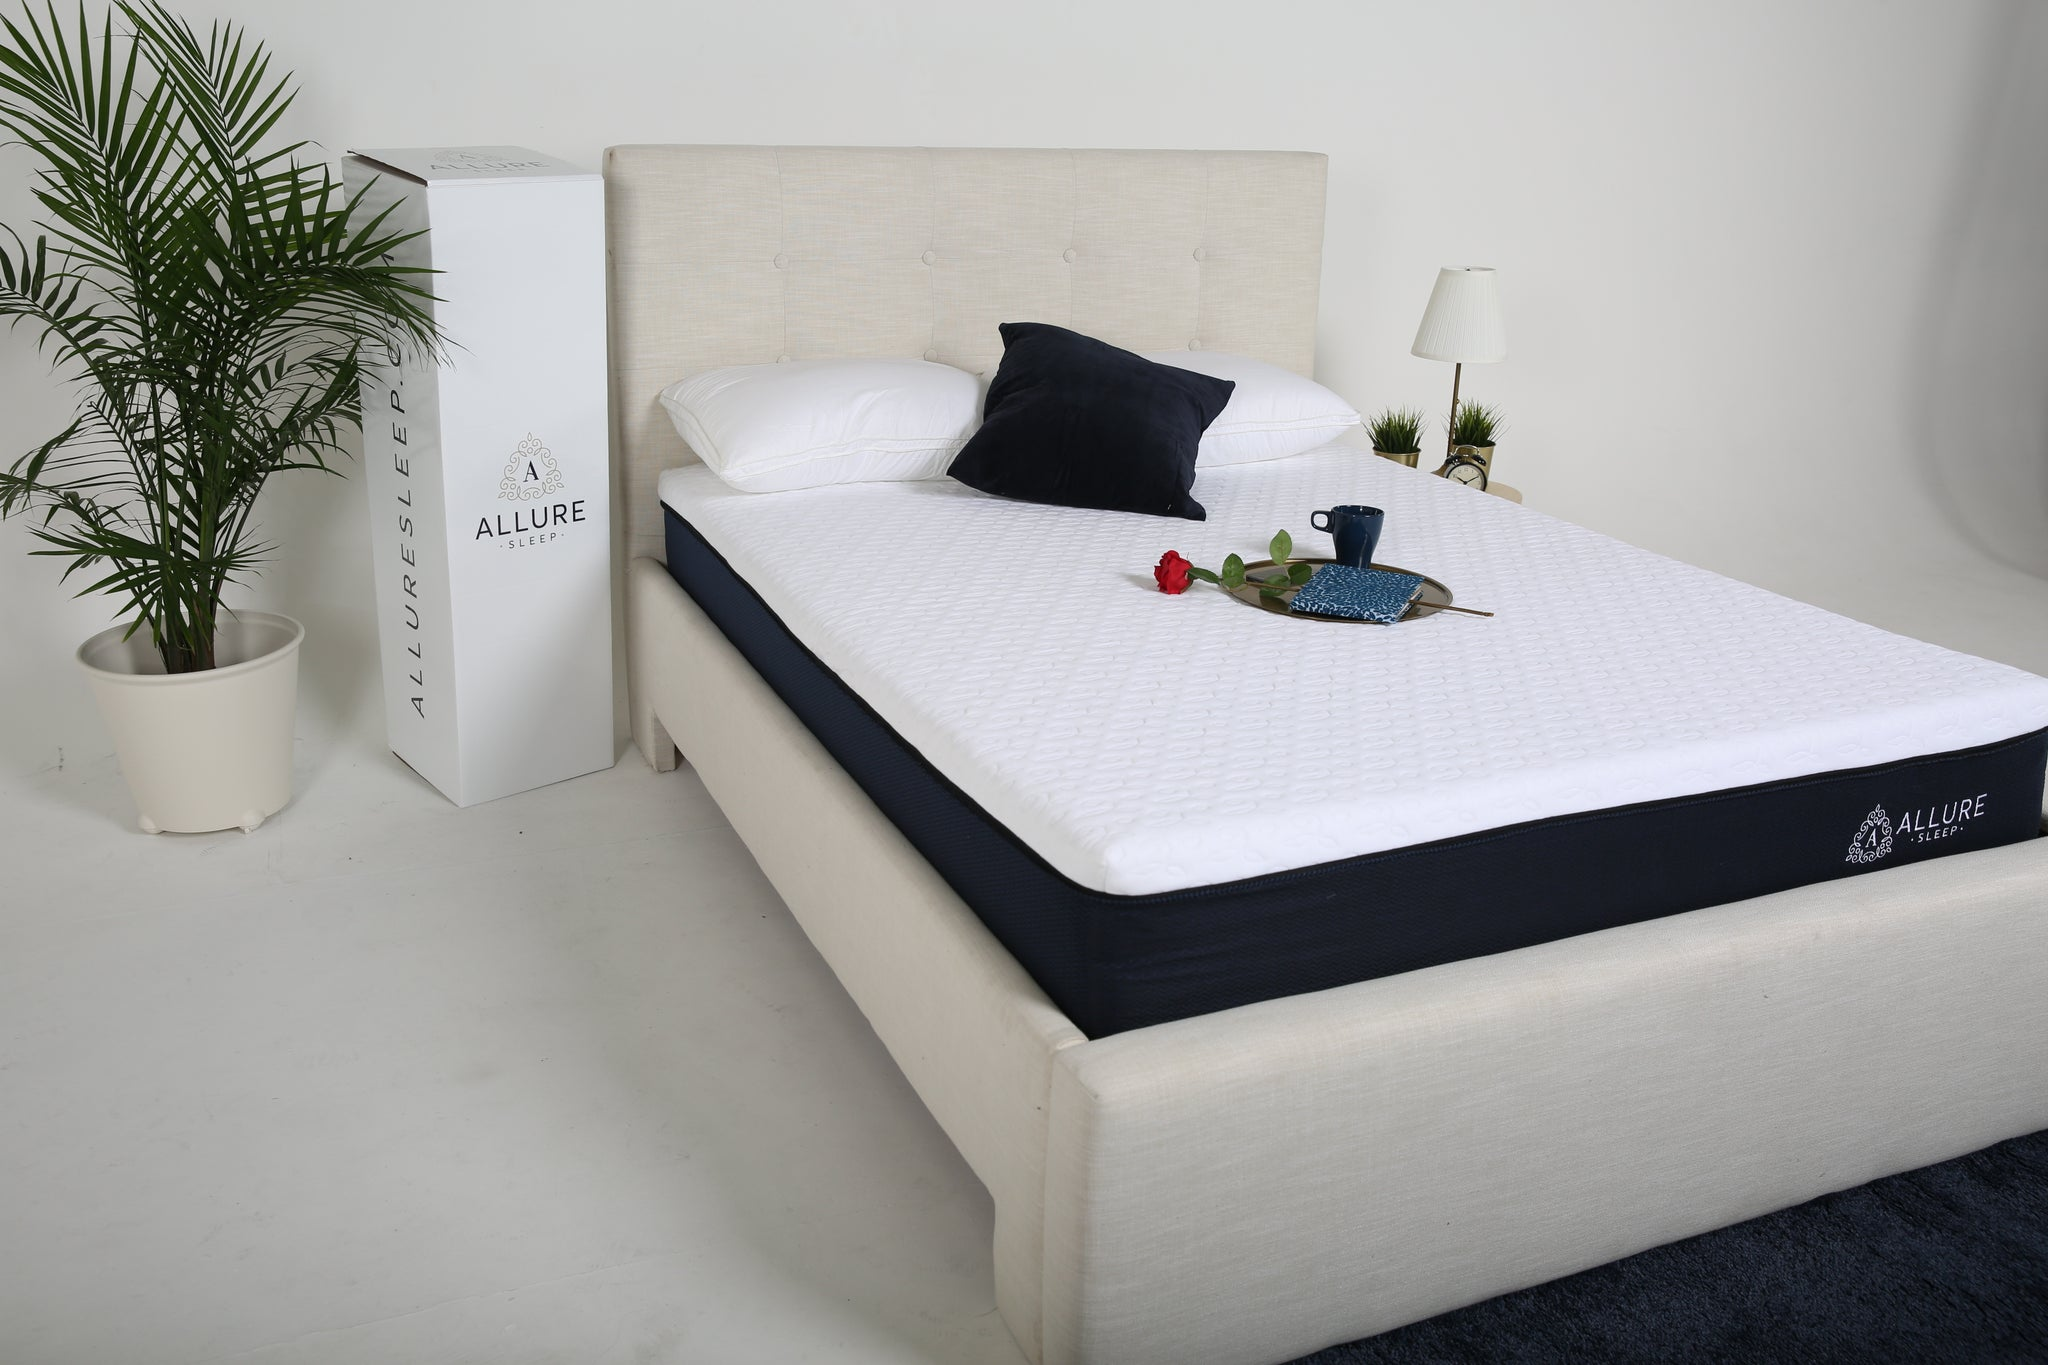 How to Unbox Your Allure Mattress